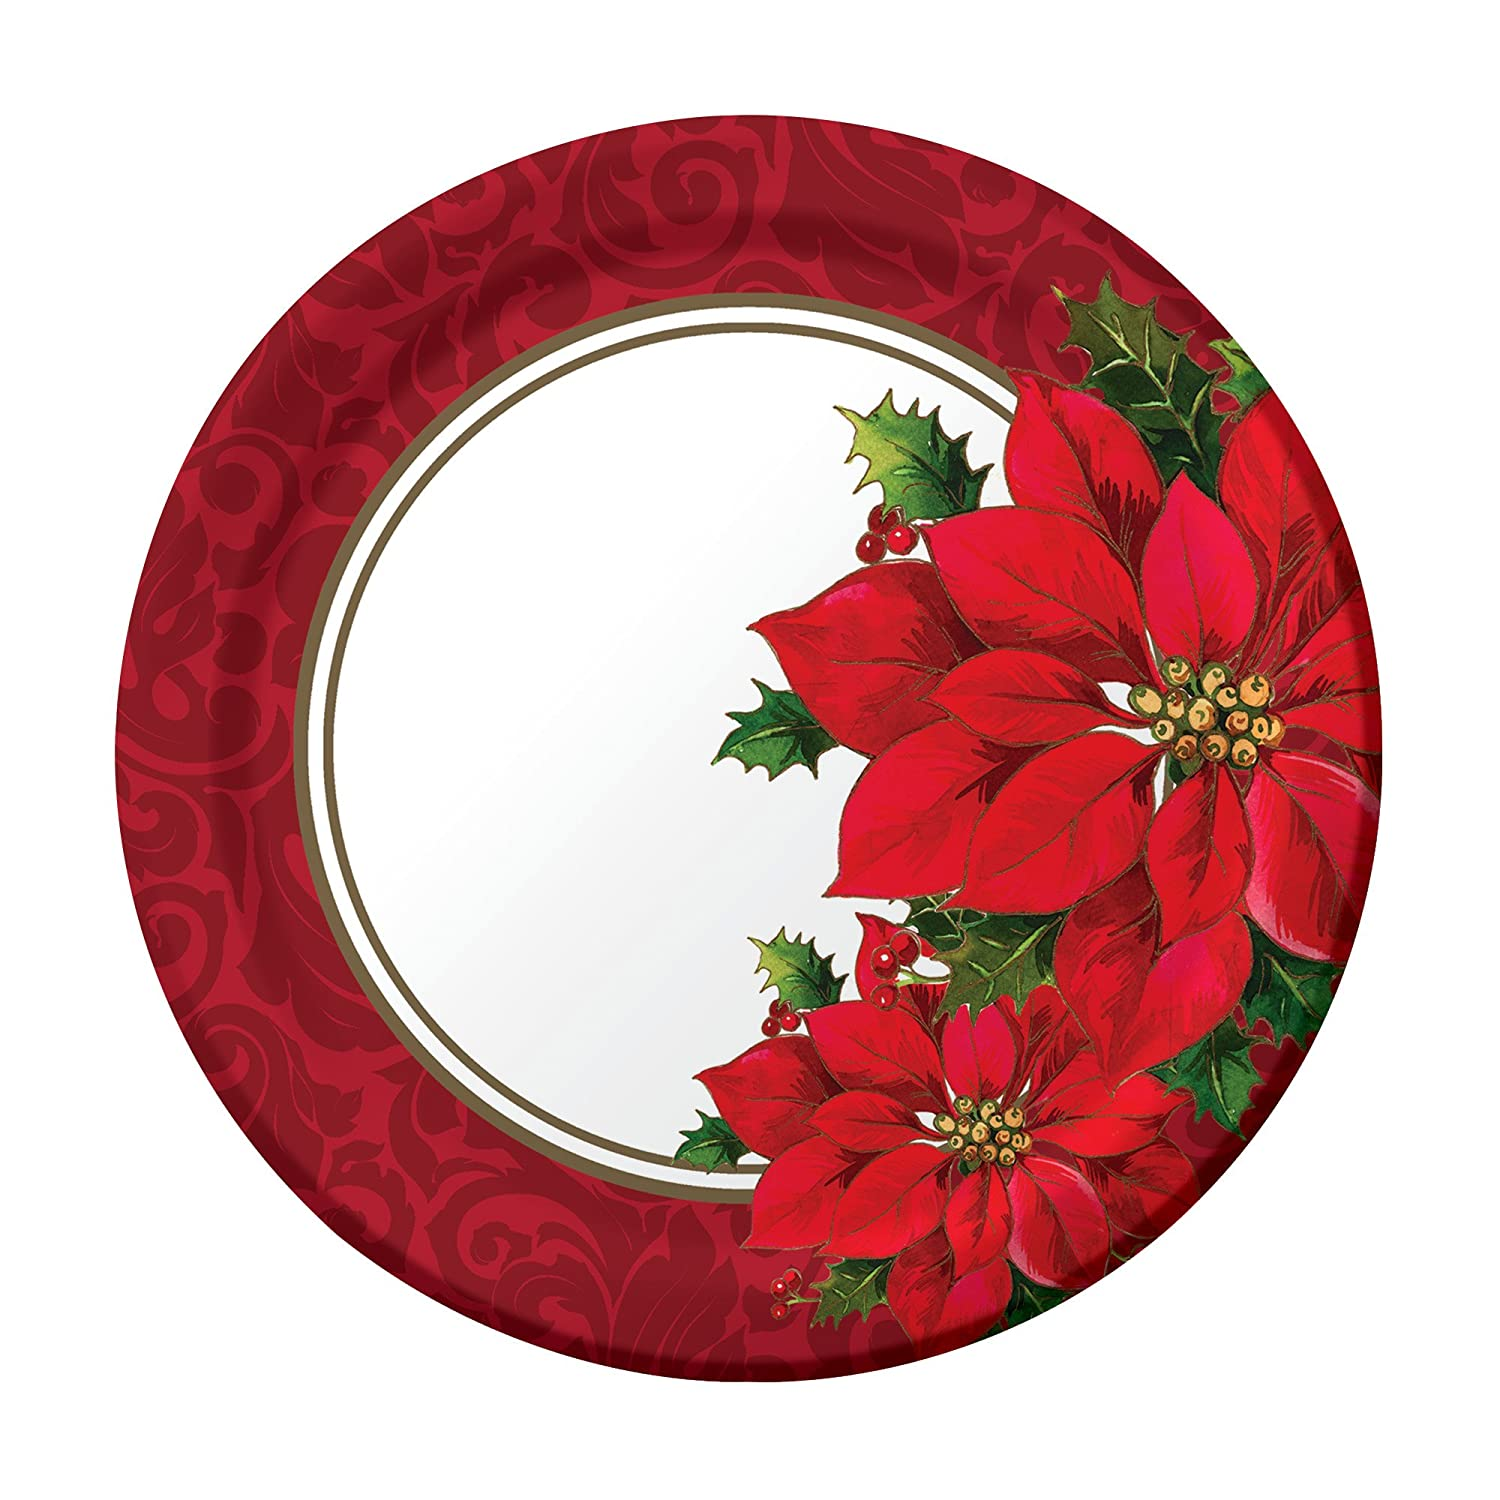 Free shipping & returns and save 5% every day with your Target weziqaze.ga: Costumes, Christmas Trees, Graduation, Artificial Flowers, Scrapbook, Magnets.